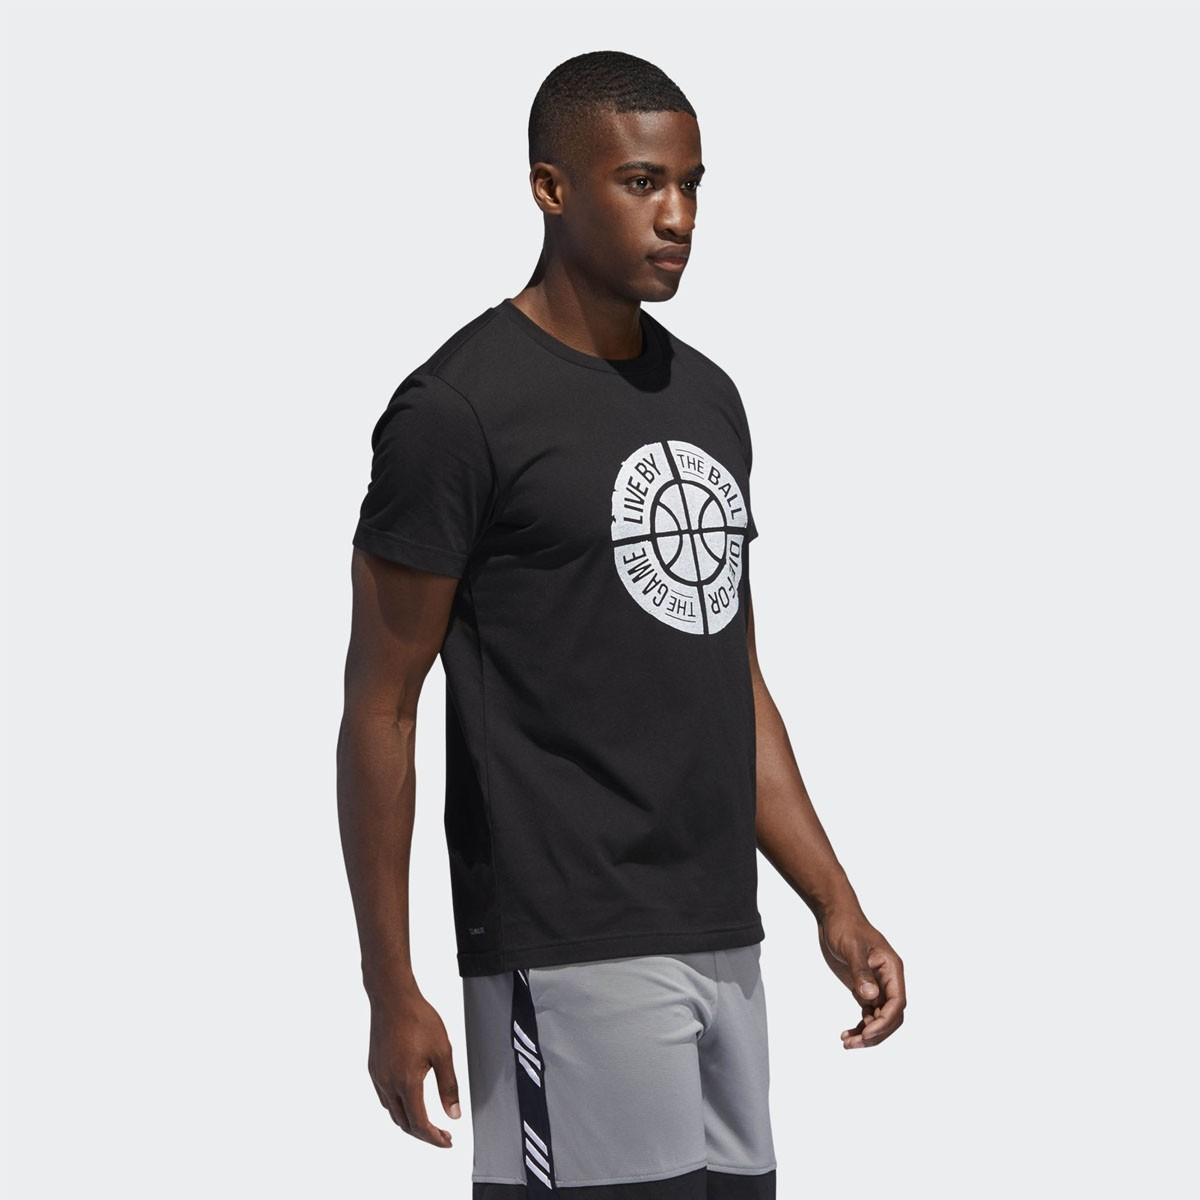 ADIDAS Graphic Tee 'Die for the game' DU6448